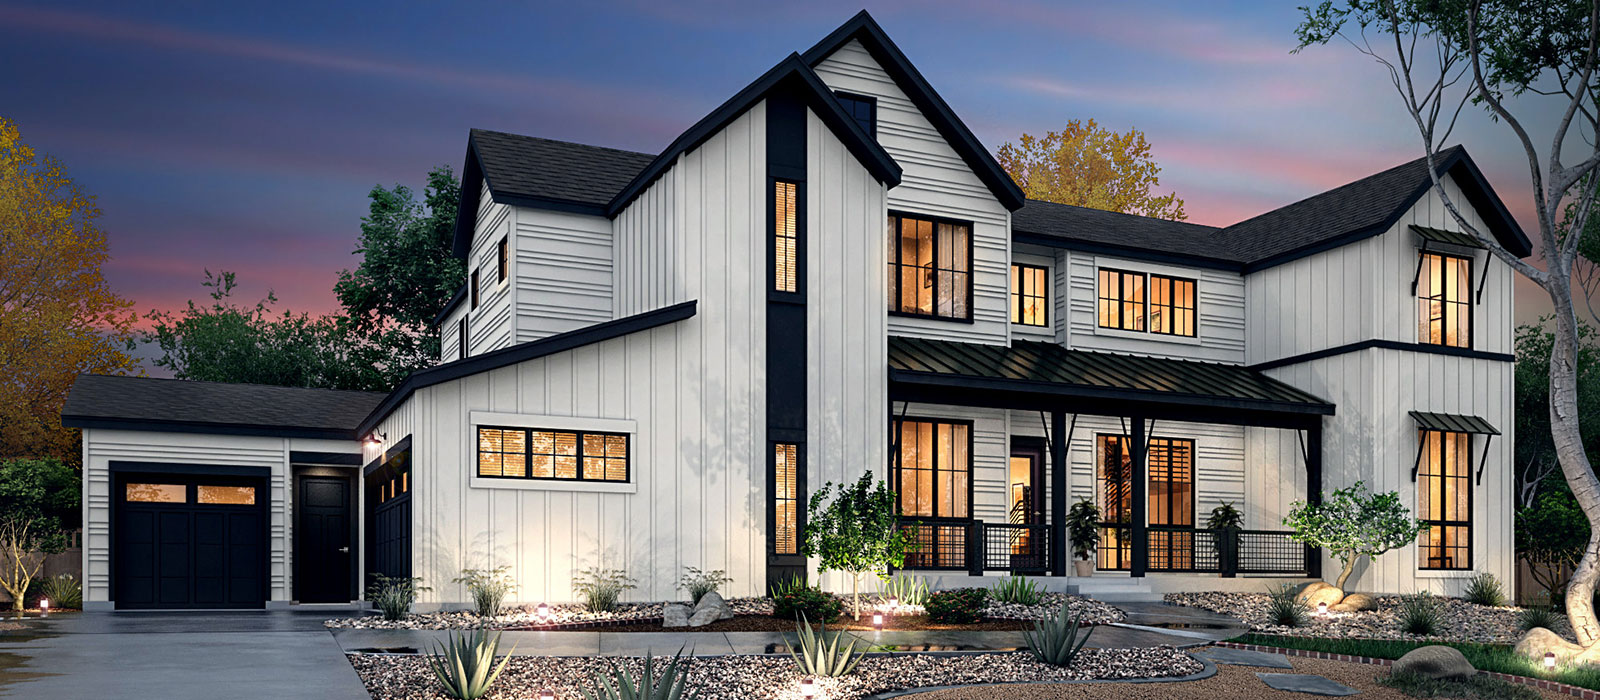 White farmhouse with black room and black trim by KGA Studio Architects